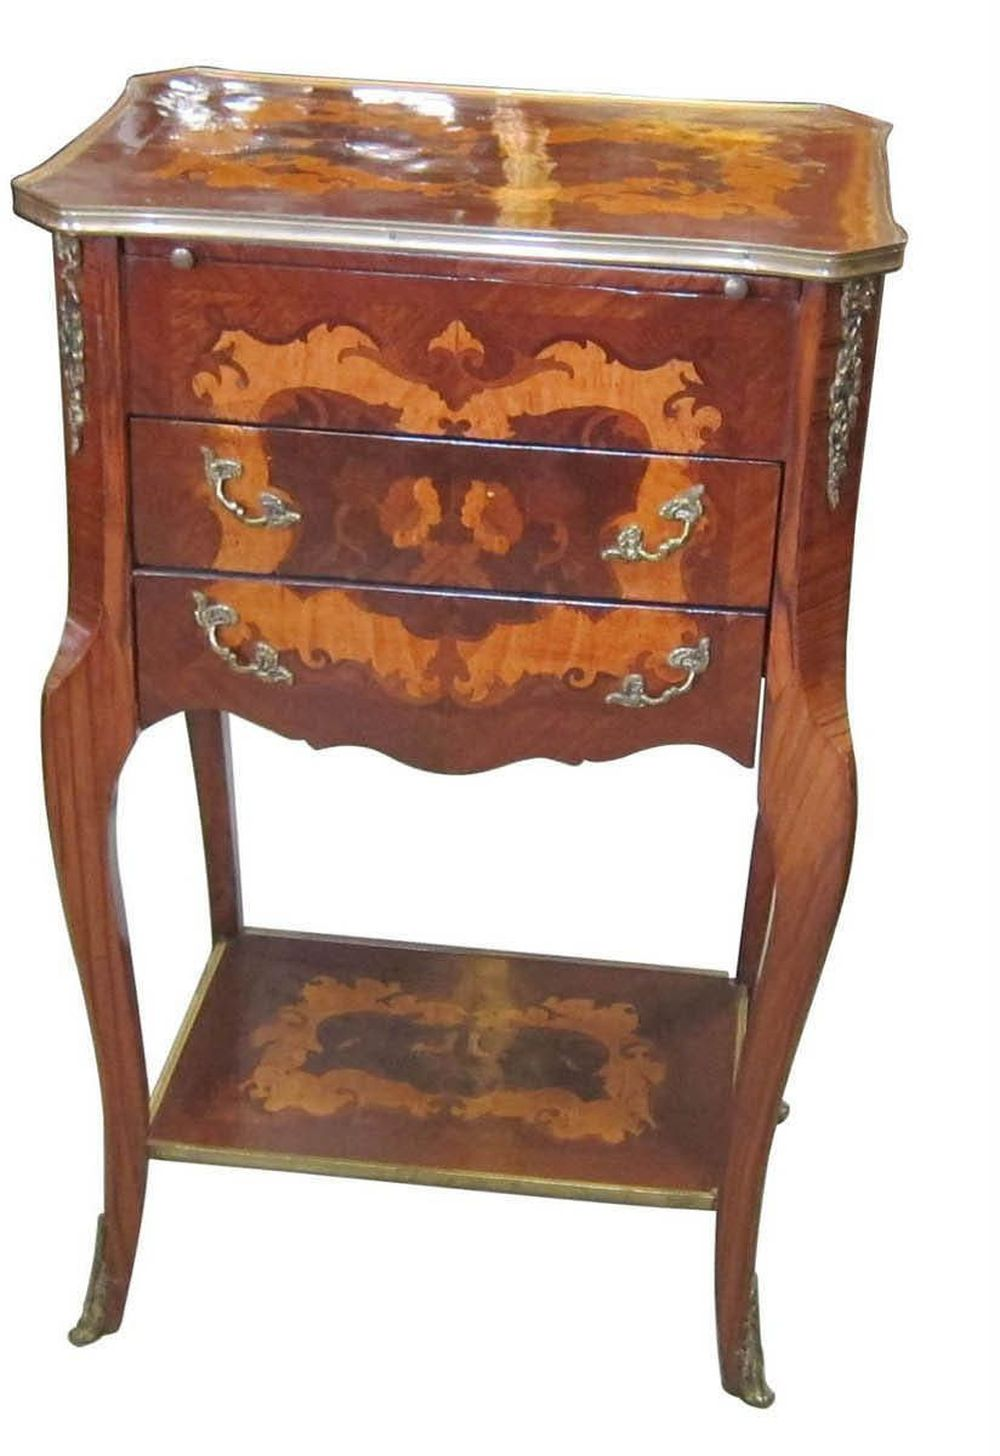 Vintage Italian 2-tier occasional table